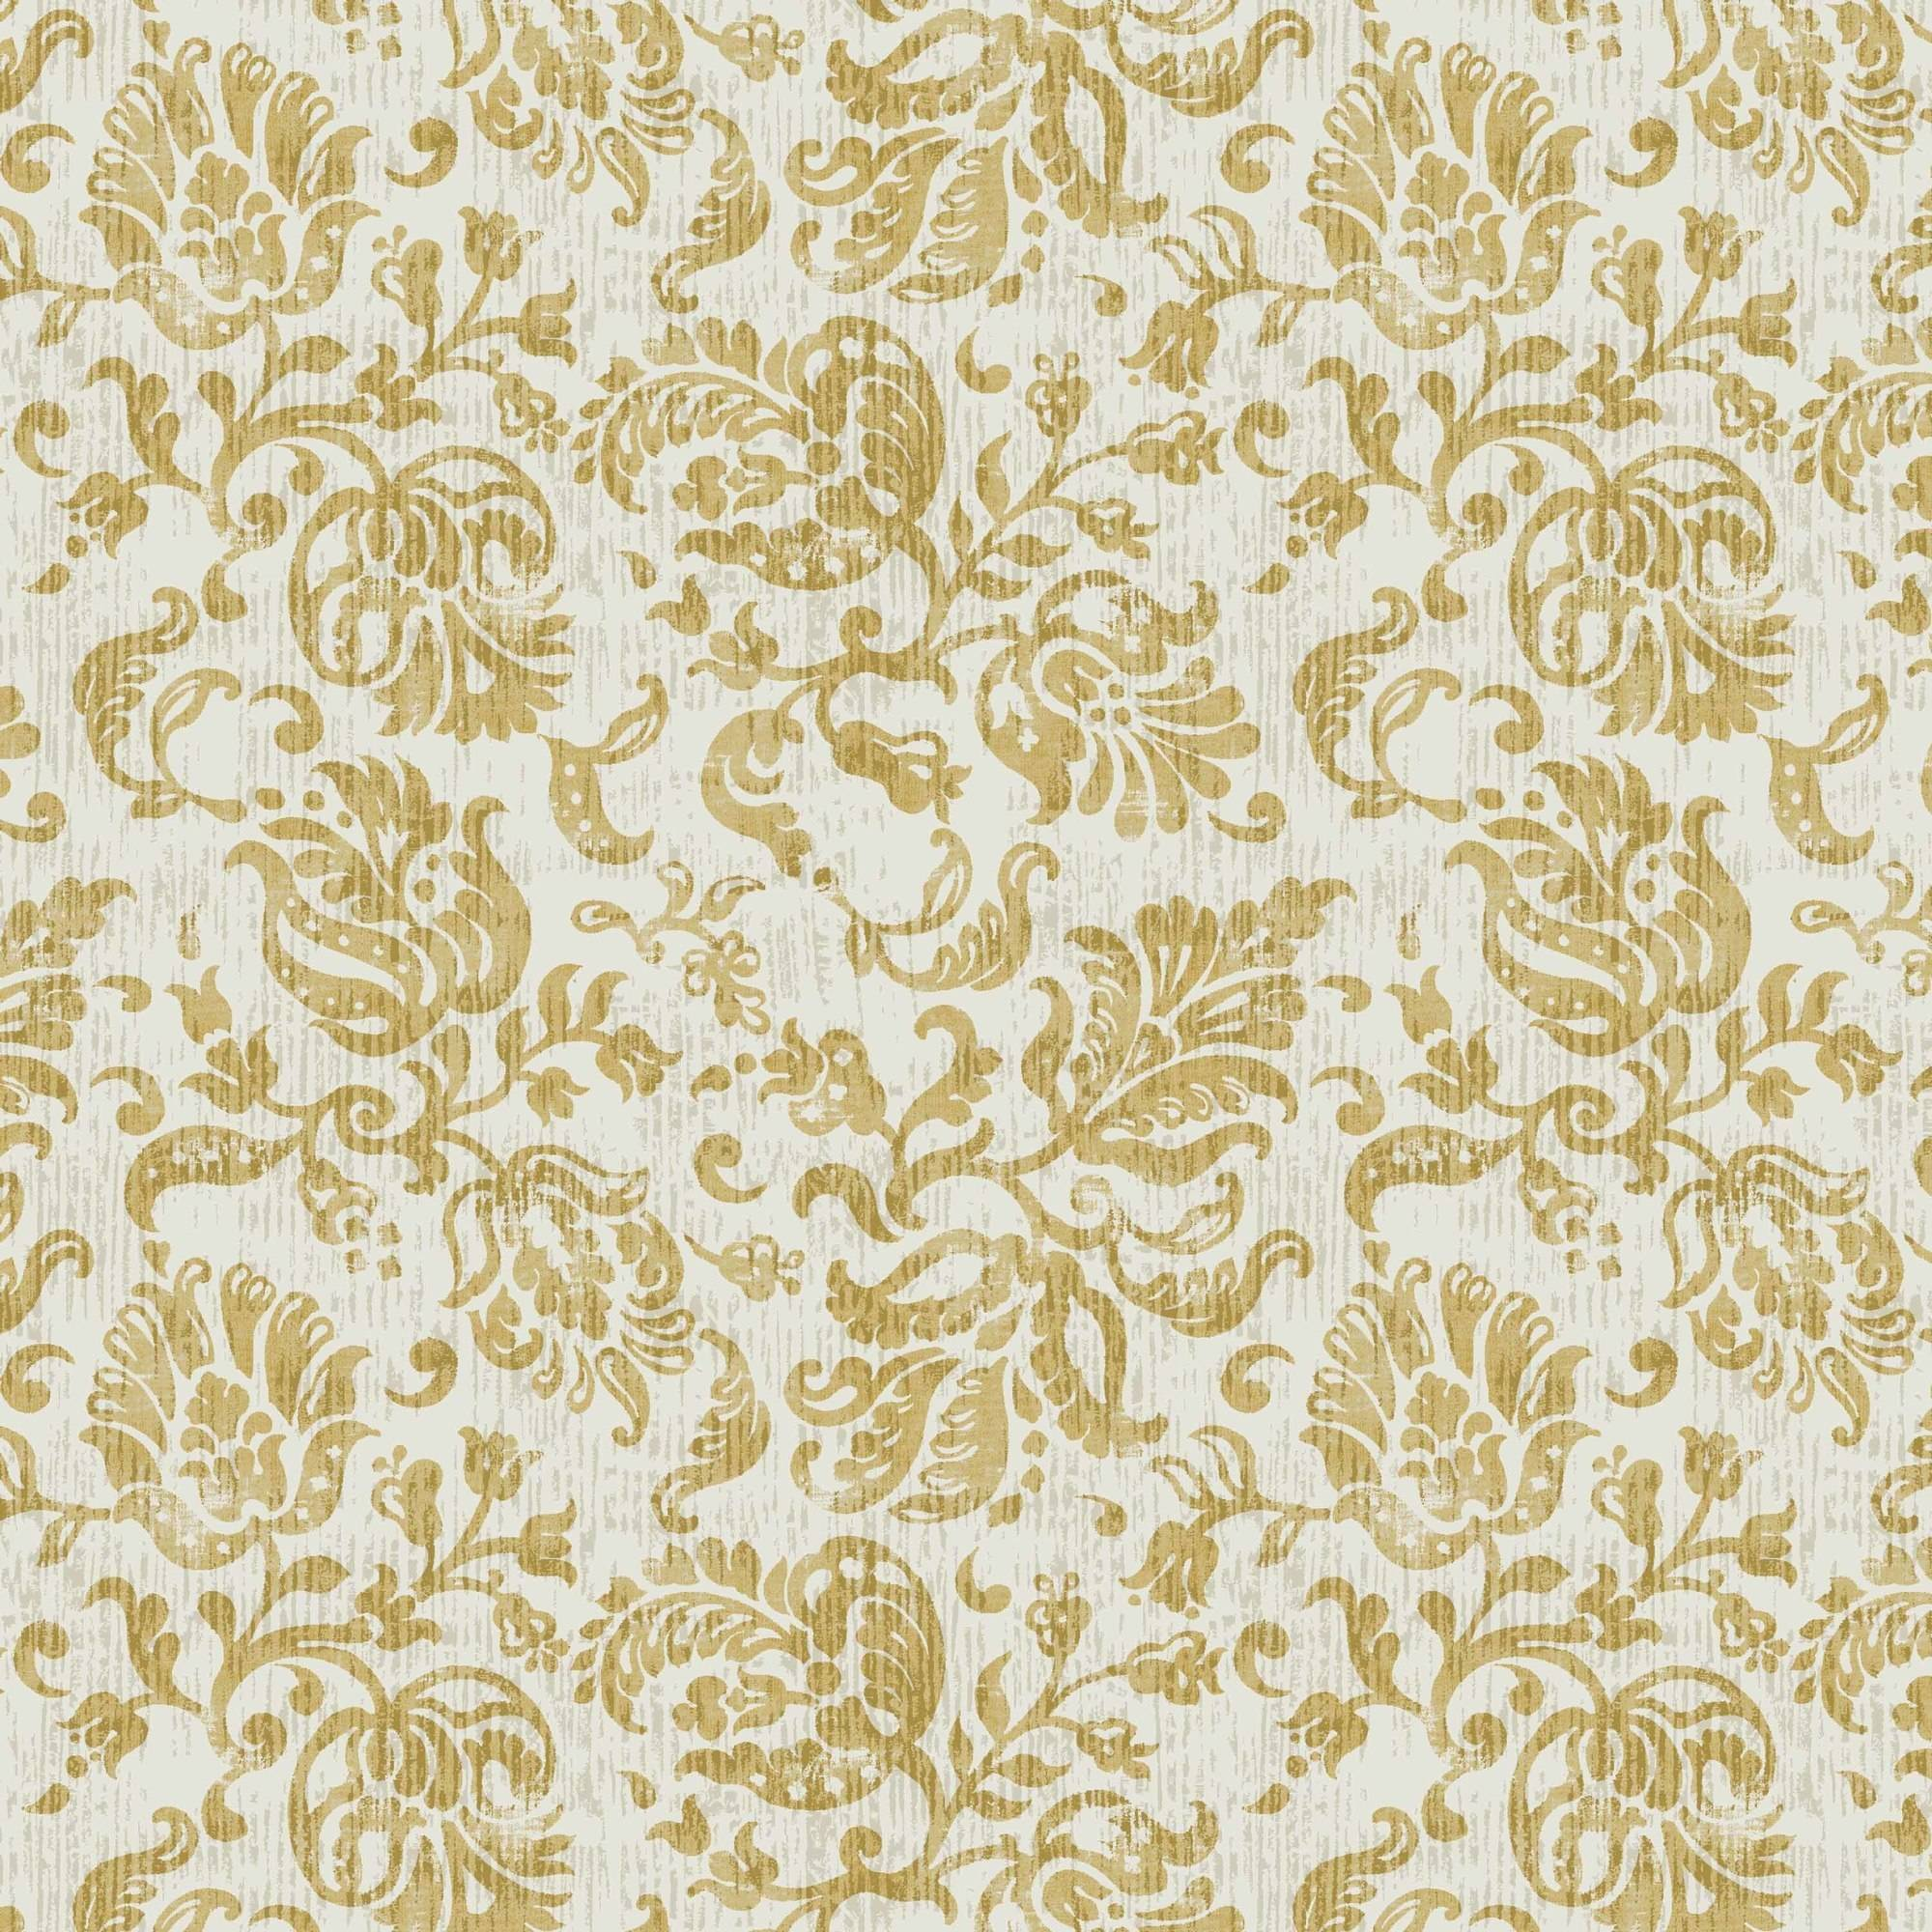 Waverly Inspirations 100% Cotton Duck Fabric 54'' Wide, 220 Gsm, Quilt Crafts Cut By The Yard